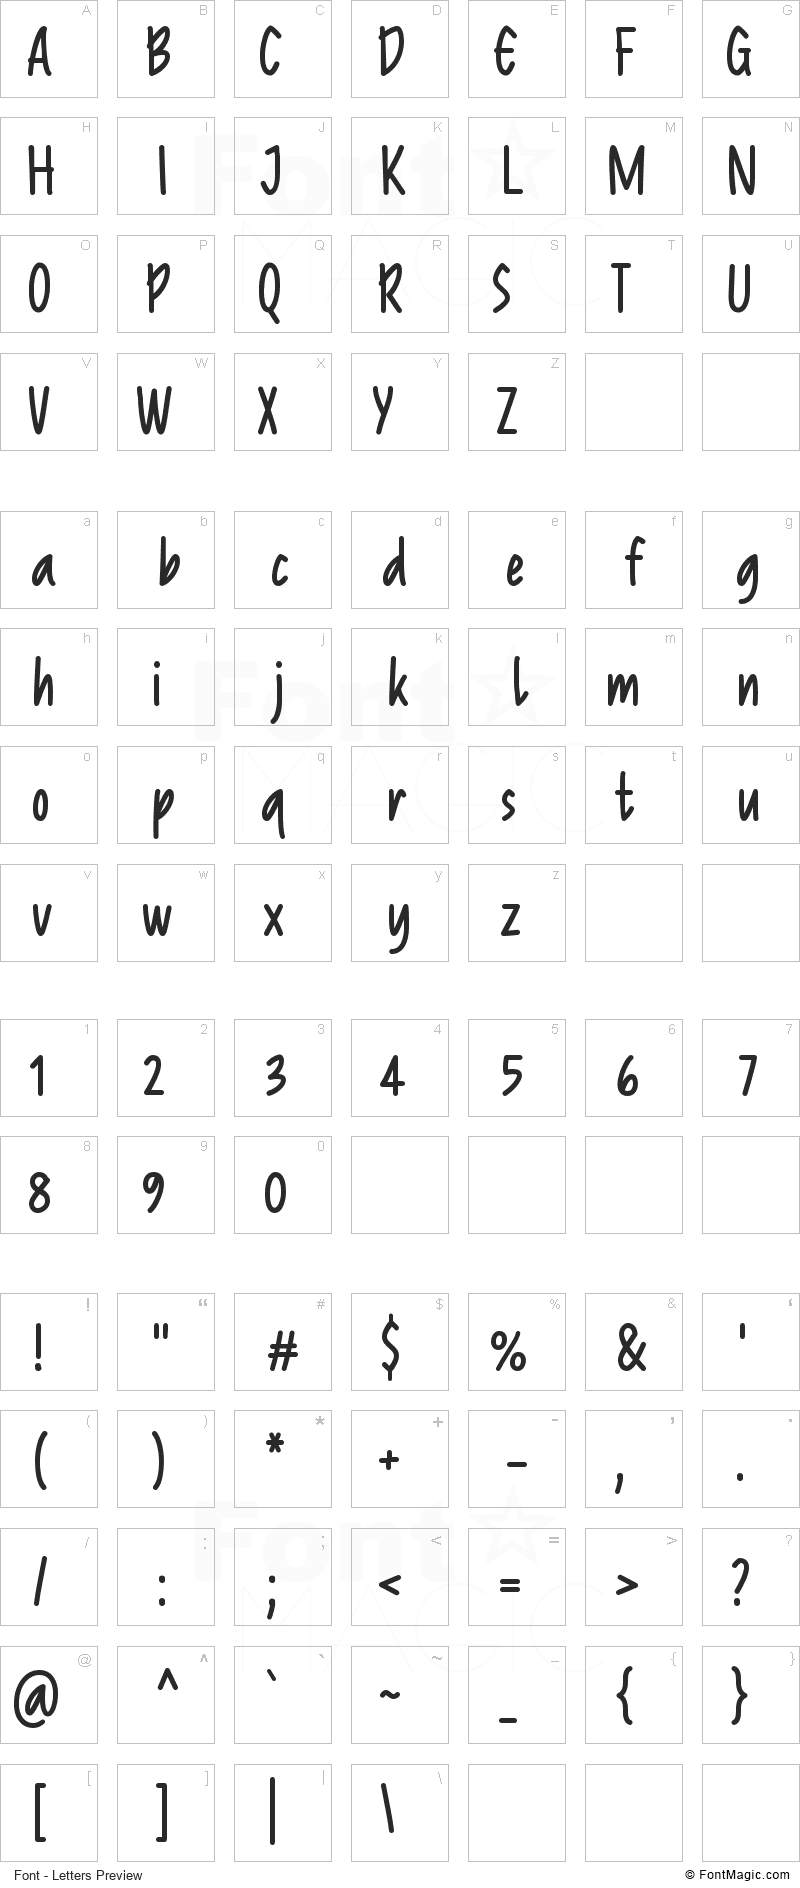 Reprineato Font - All Latters Preview Chart